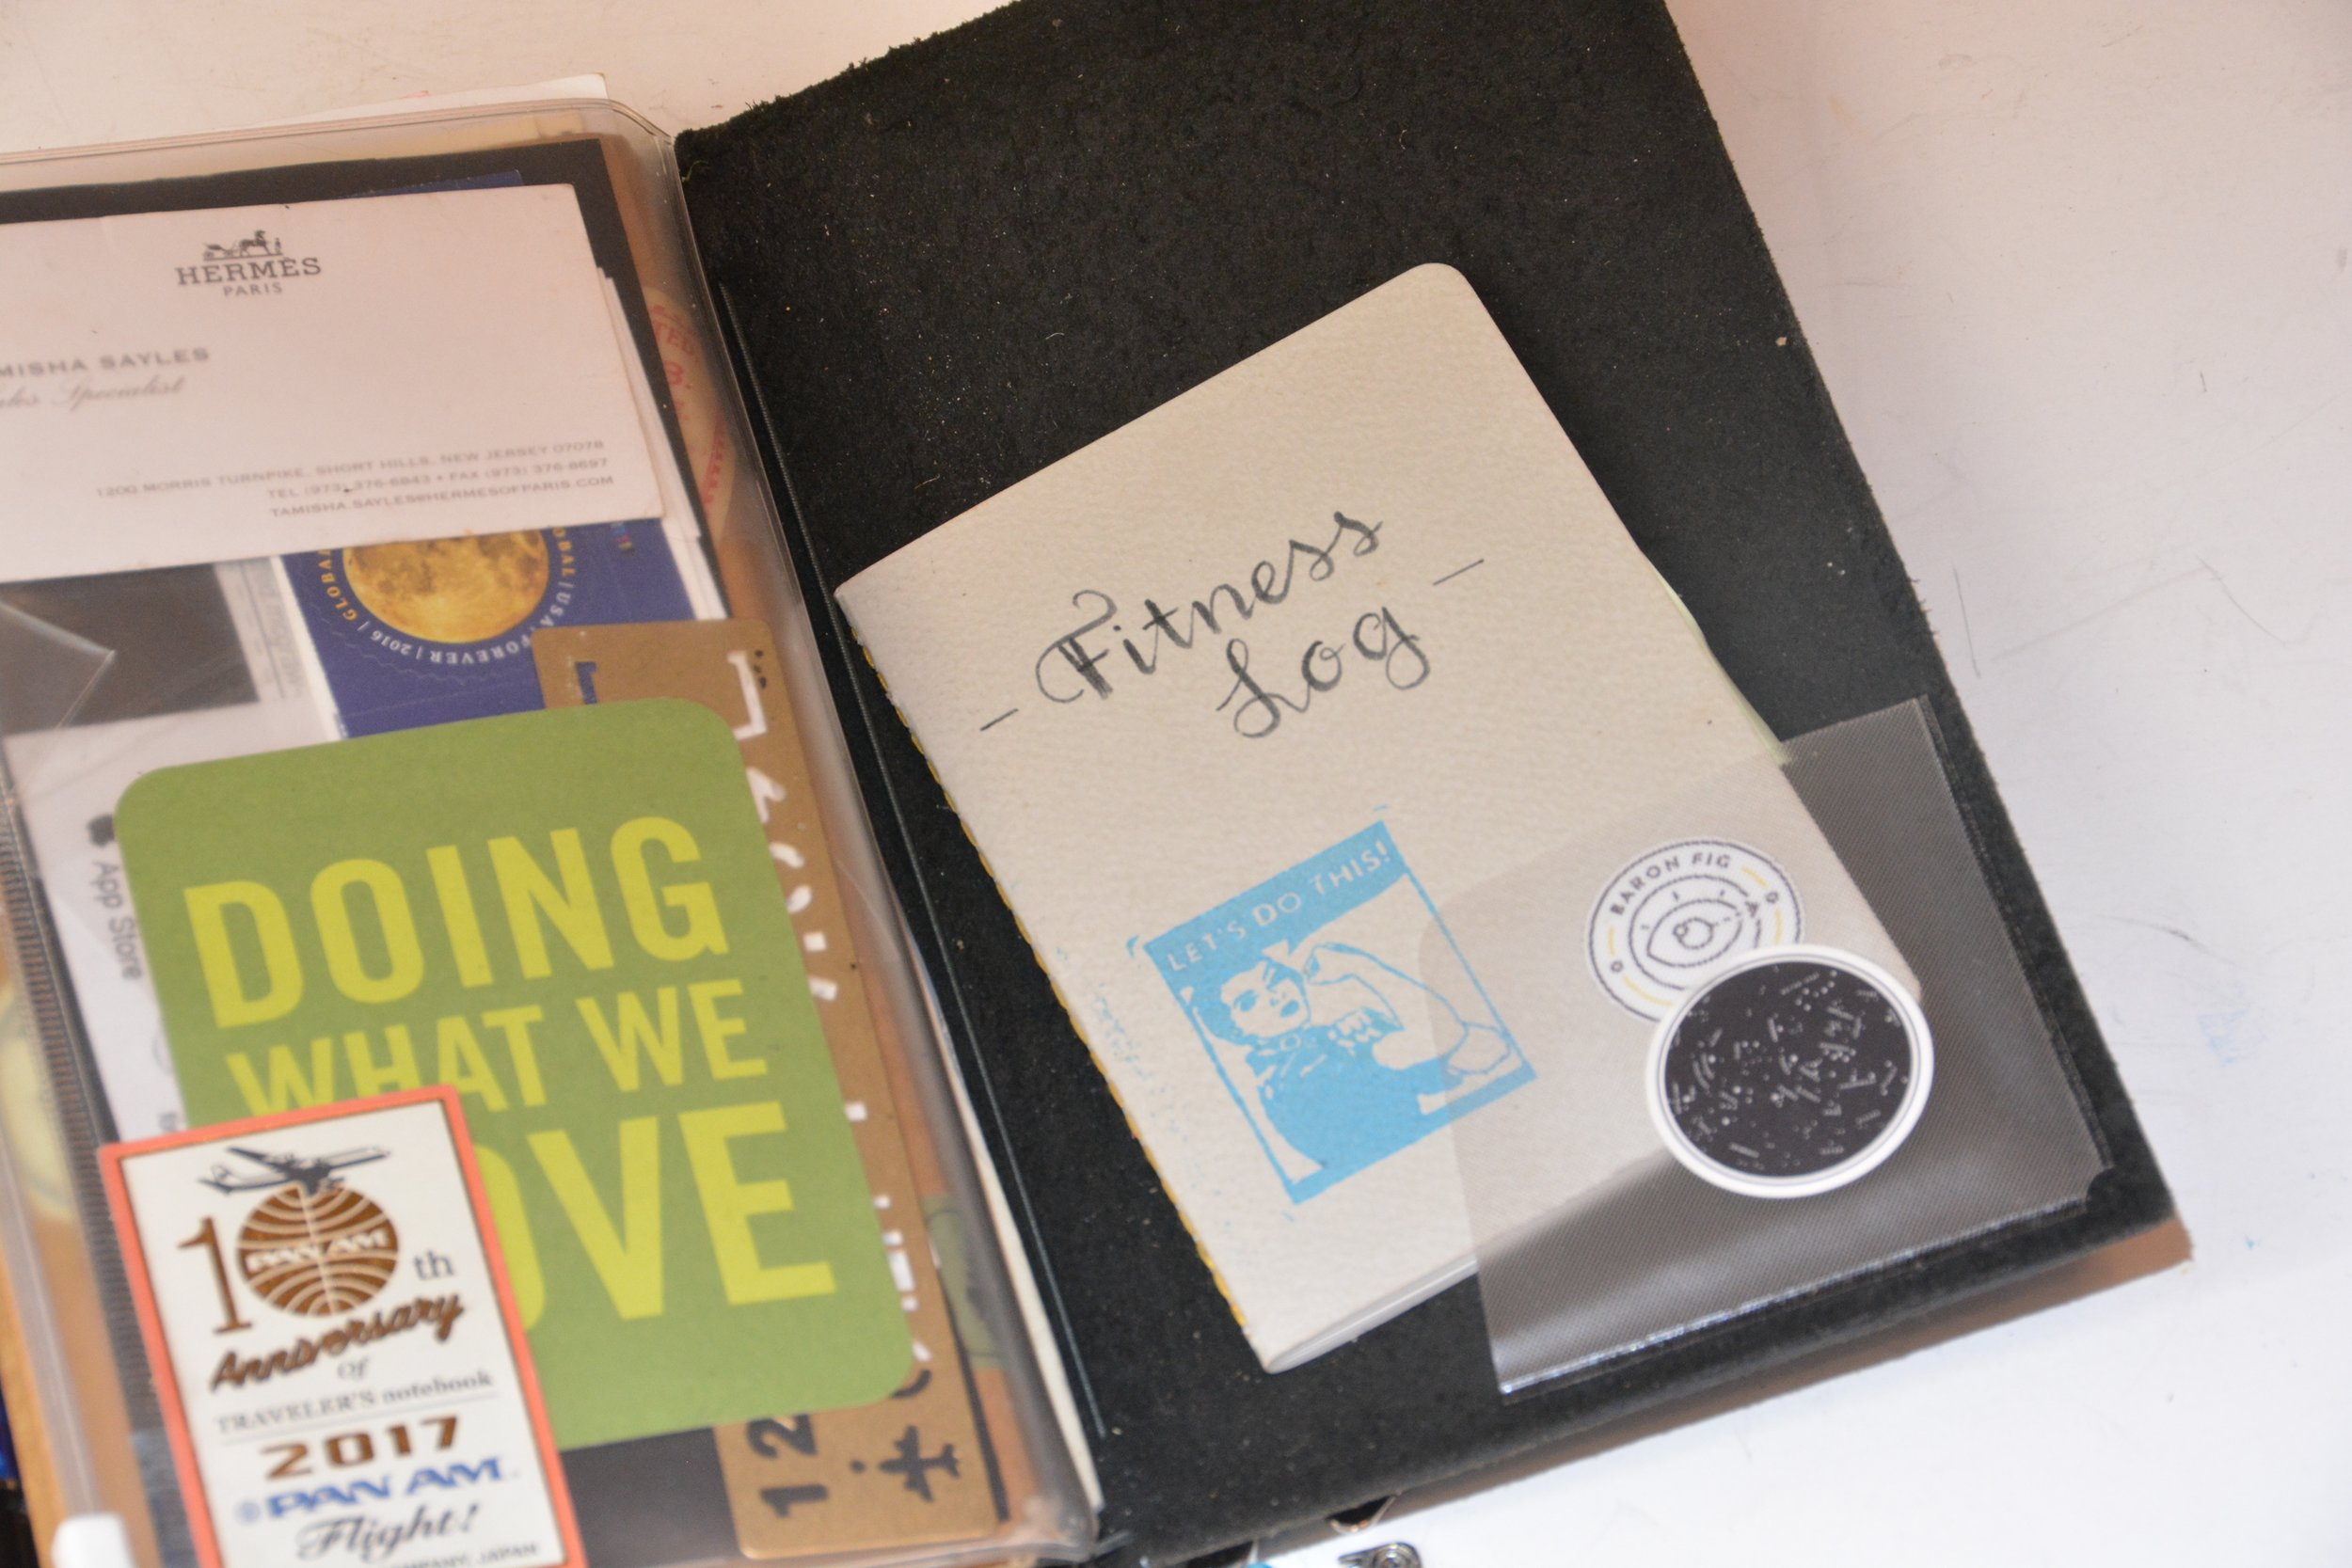 My zippered pouch serves to hold stamps an a few other items I need or want to have on hand, plus a reminder. Tucked inside a sticker pocket is my fitness log in a pocket size notebook by Baron Fig.